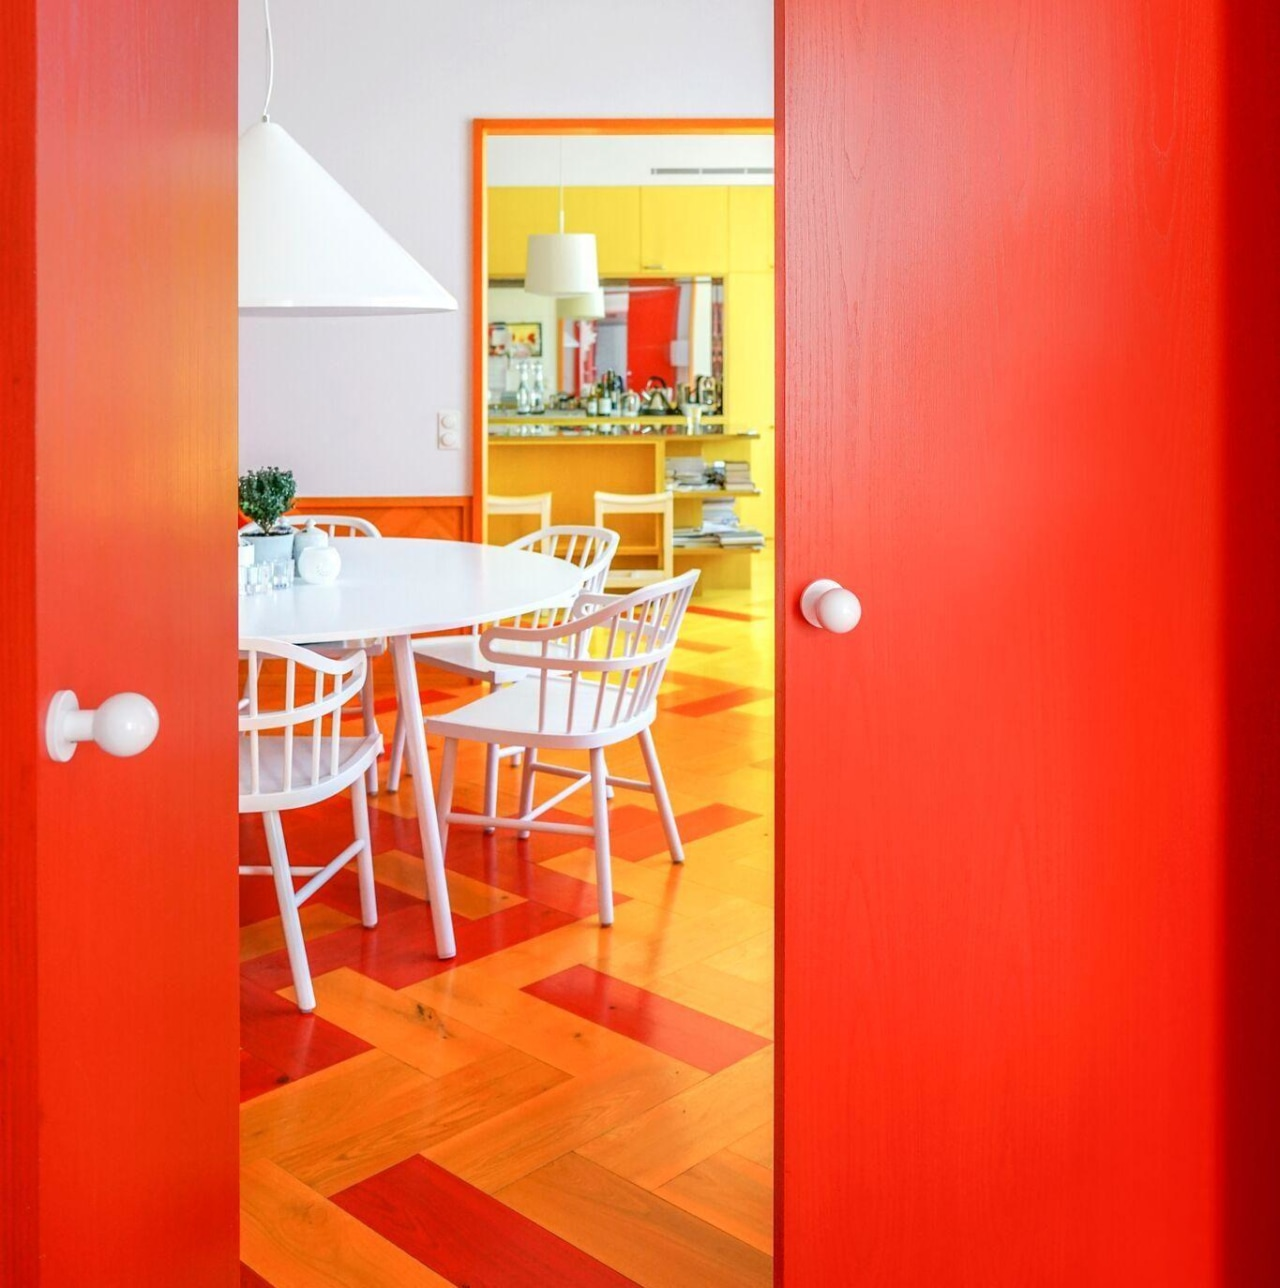 """""""The colours are addictive. Now that we know architecture, building, door, floor, furniture, house, interior design, line, material property, orange, property, red, room, table, wall, yellow, red, orange"""